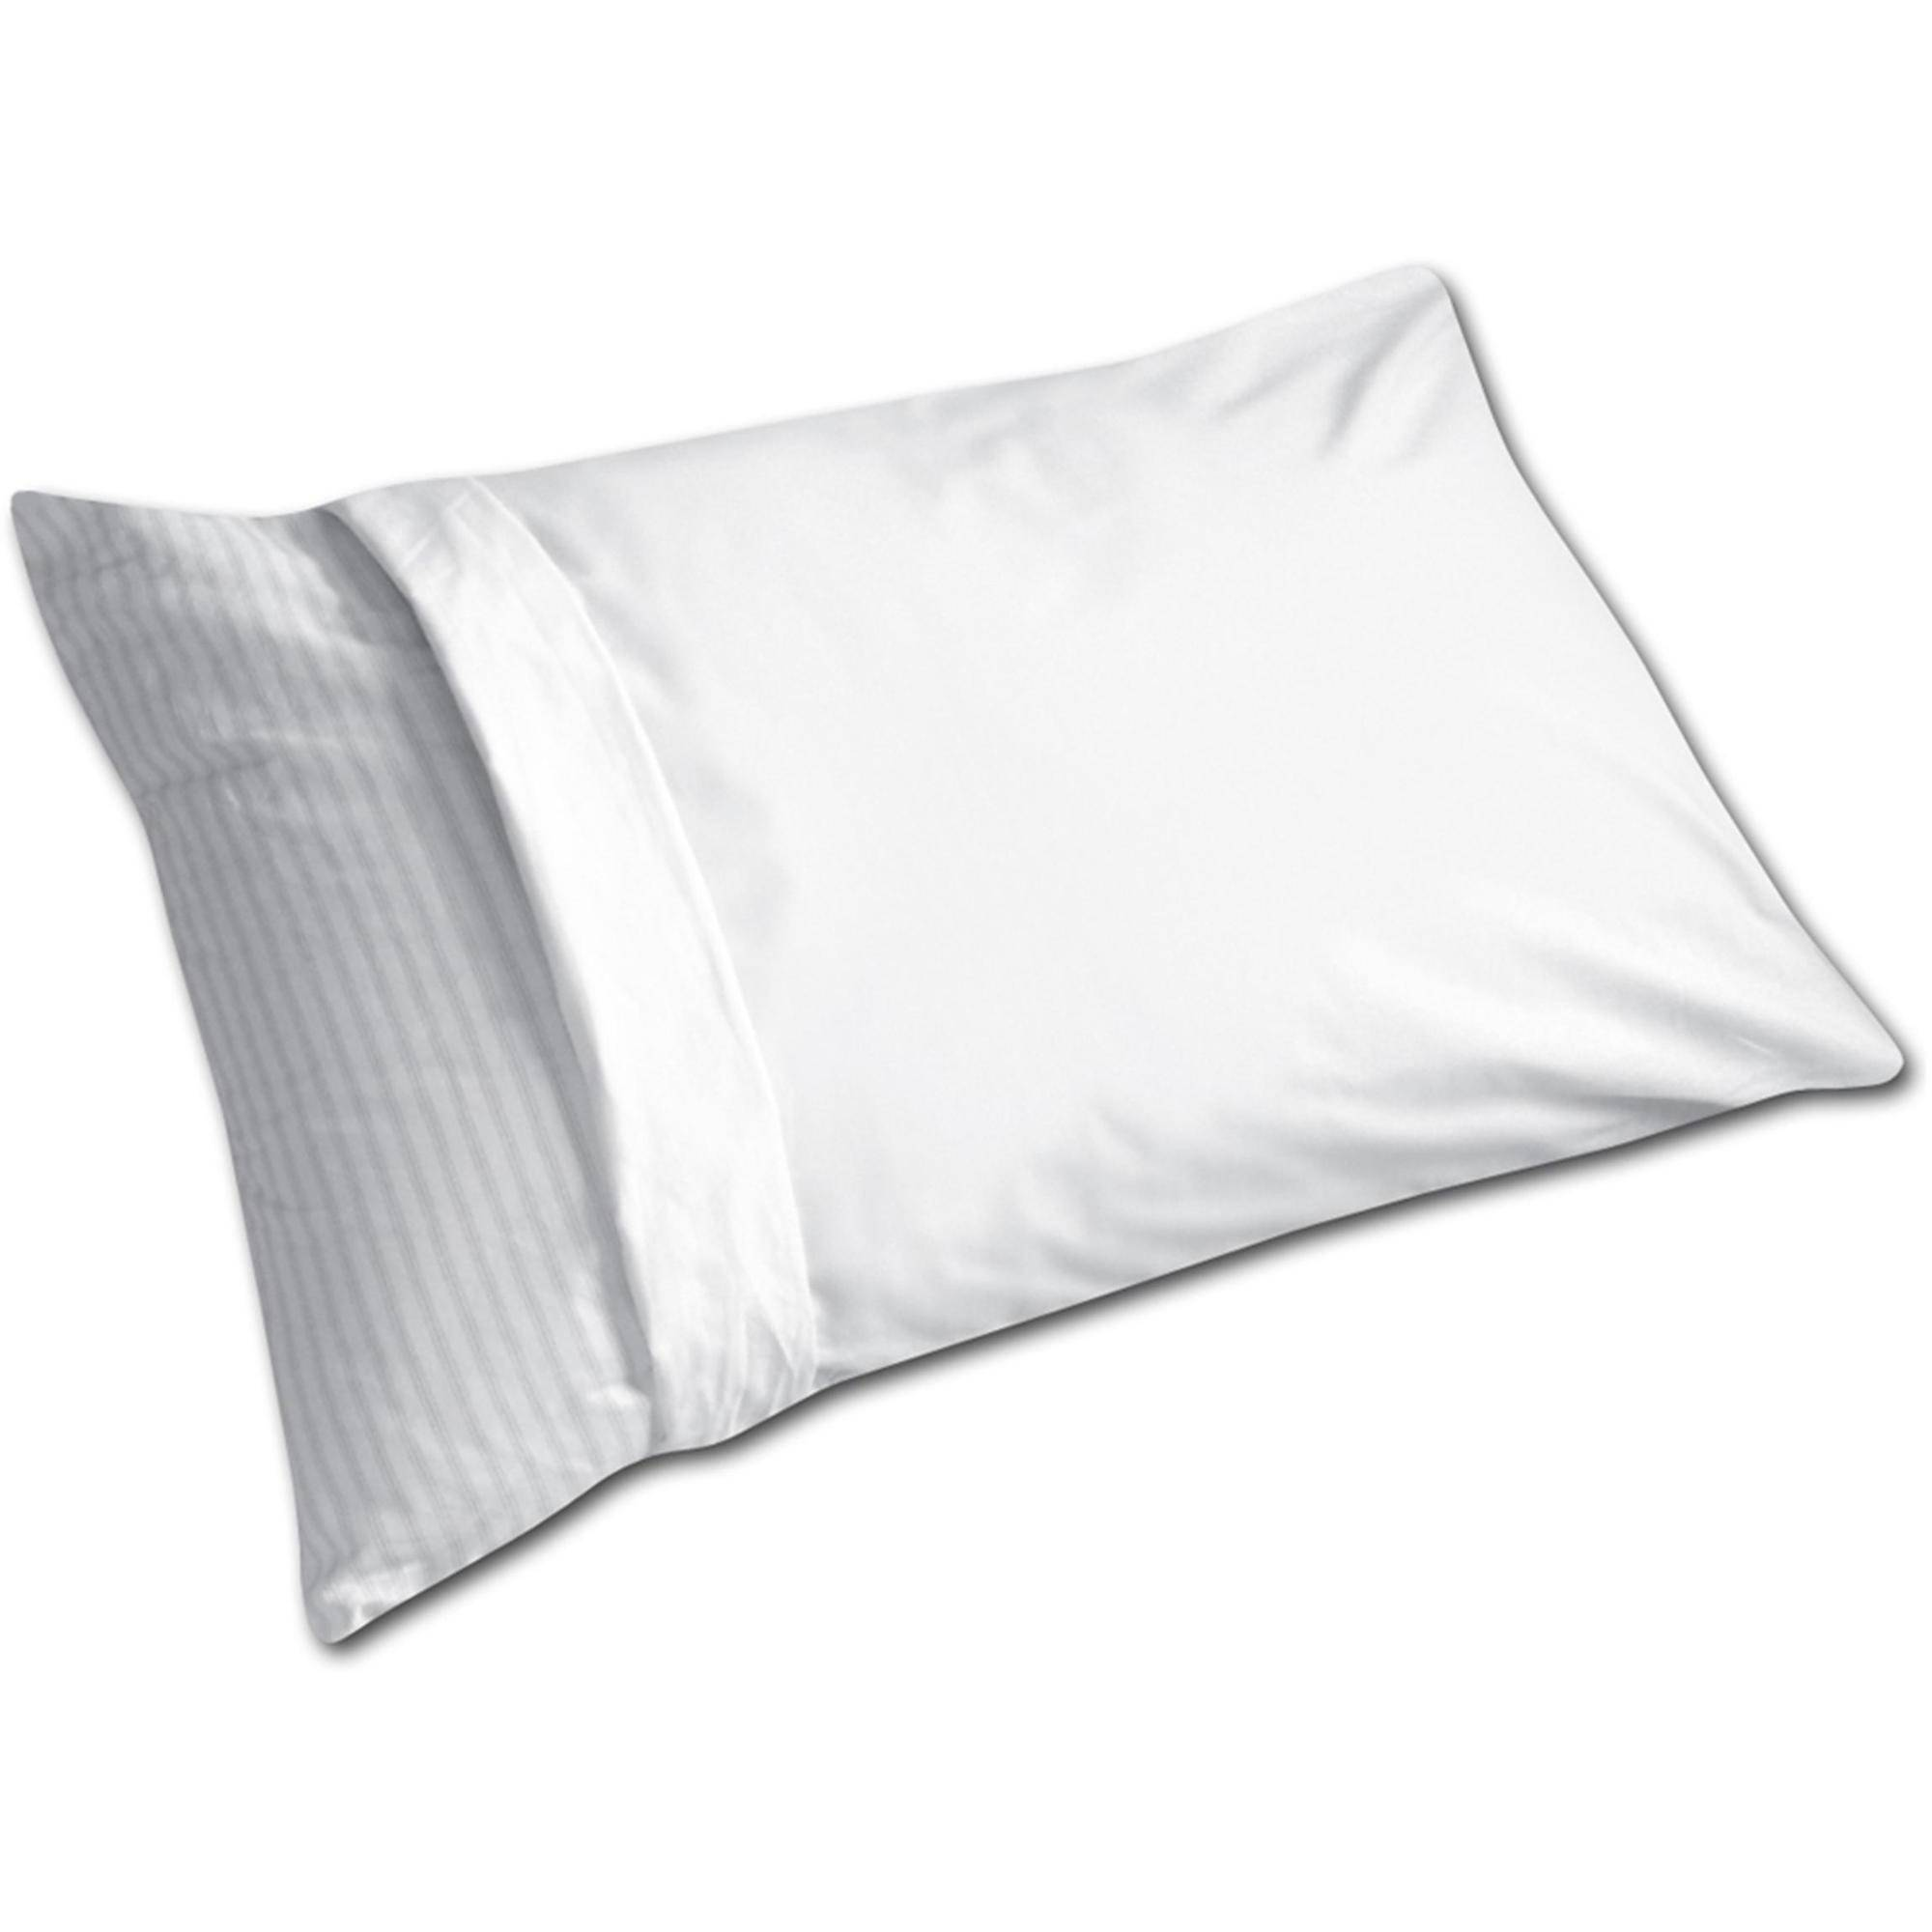 mainstays cotton blend zippered pillow covers 2 count